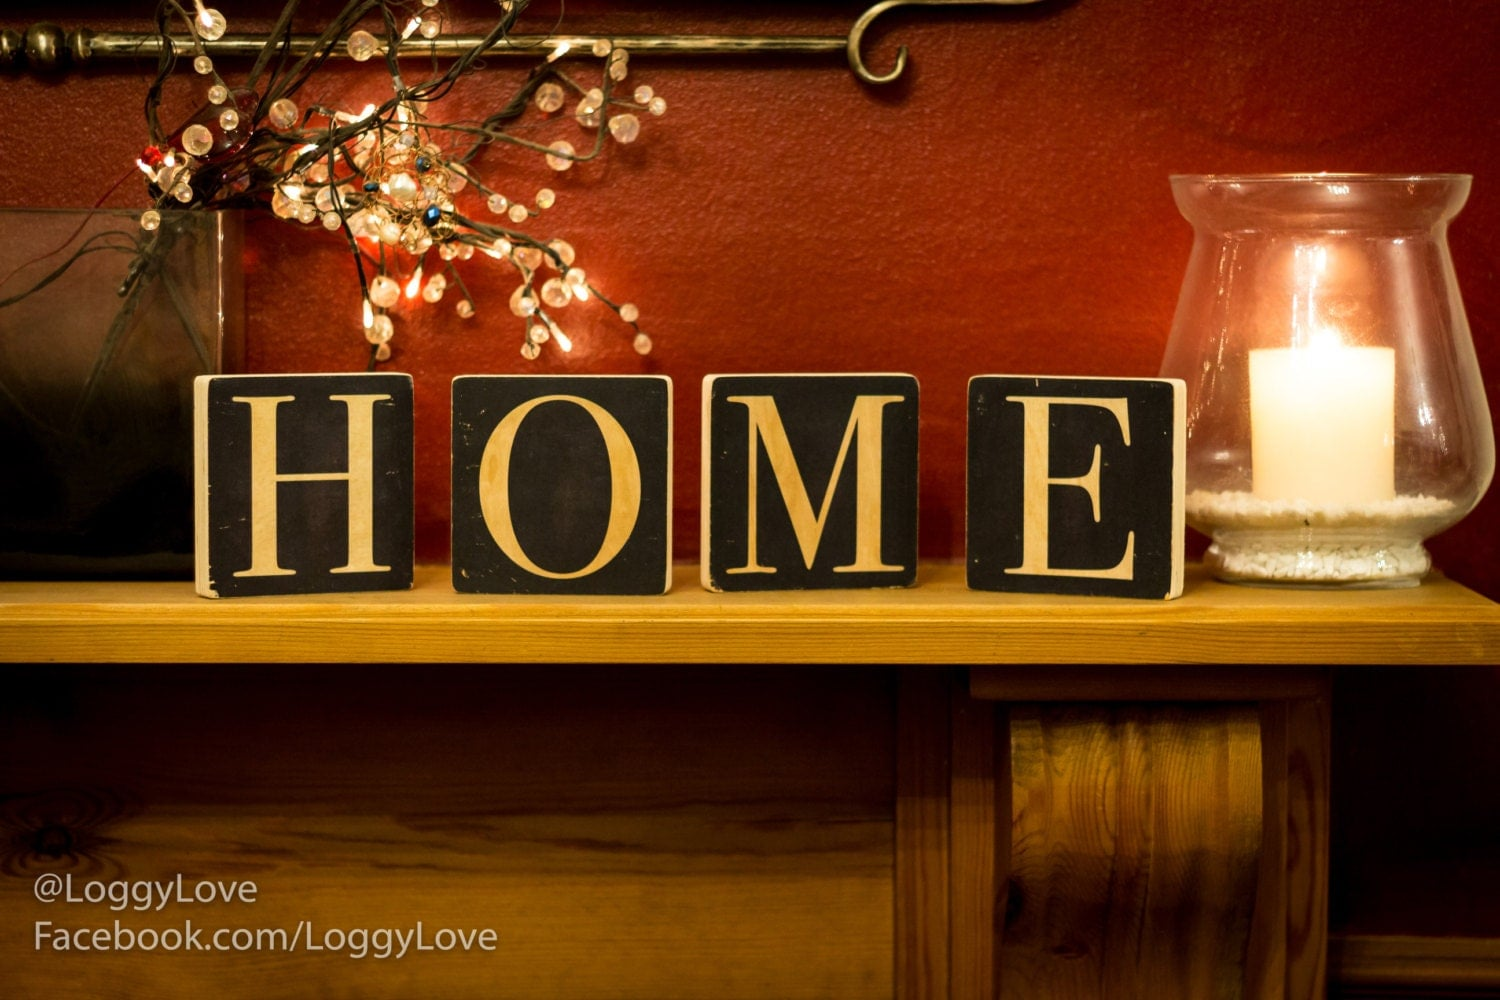 Home Sign Freestanding Blocks Wood Sign Home Decor Rustic Wood Signs Rustic Signs New Home New Home Gift Home Sweet Home